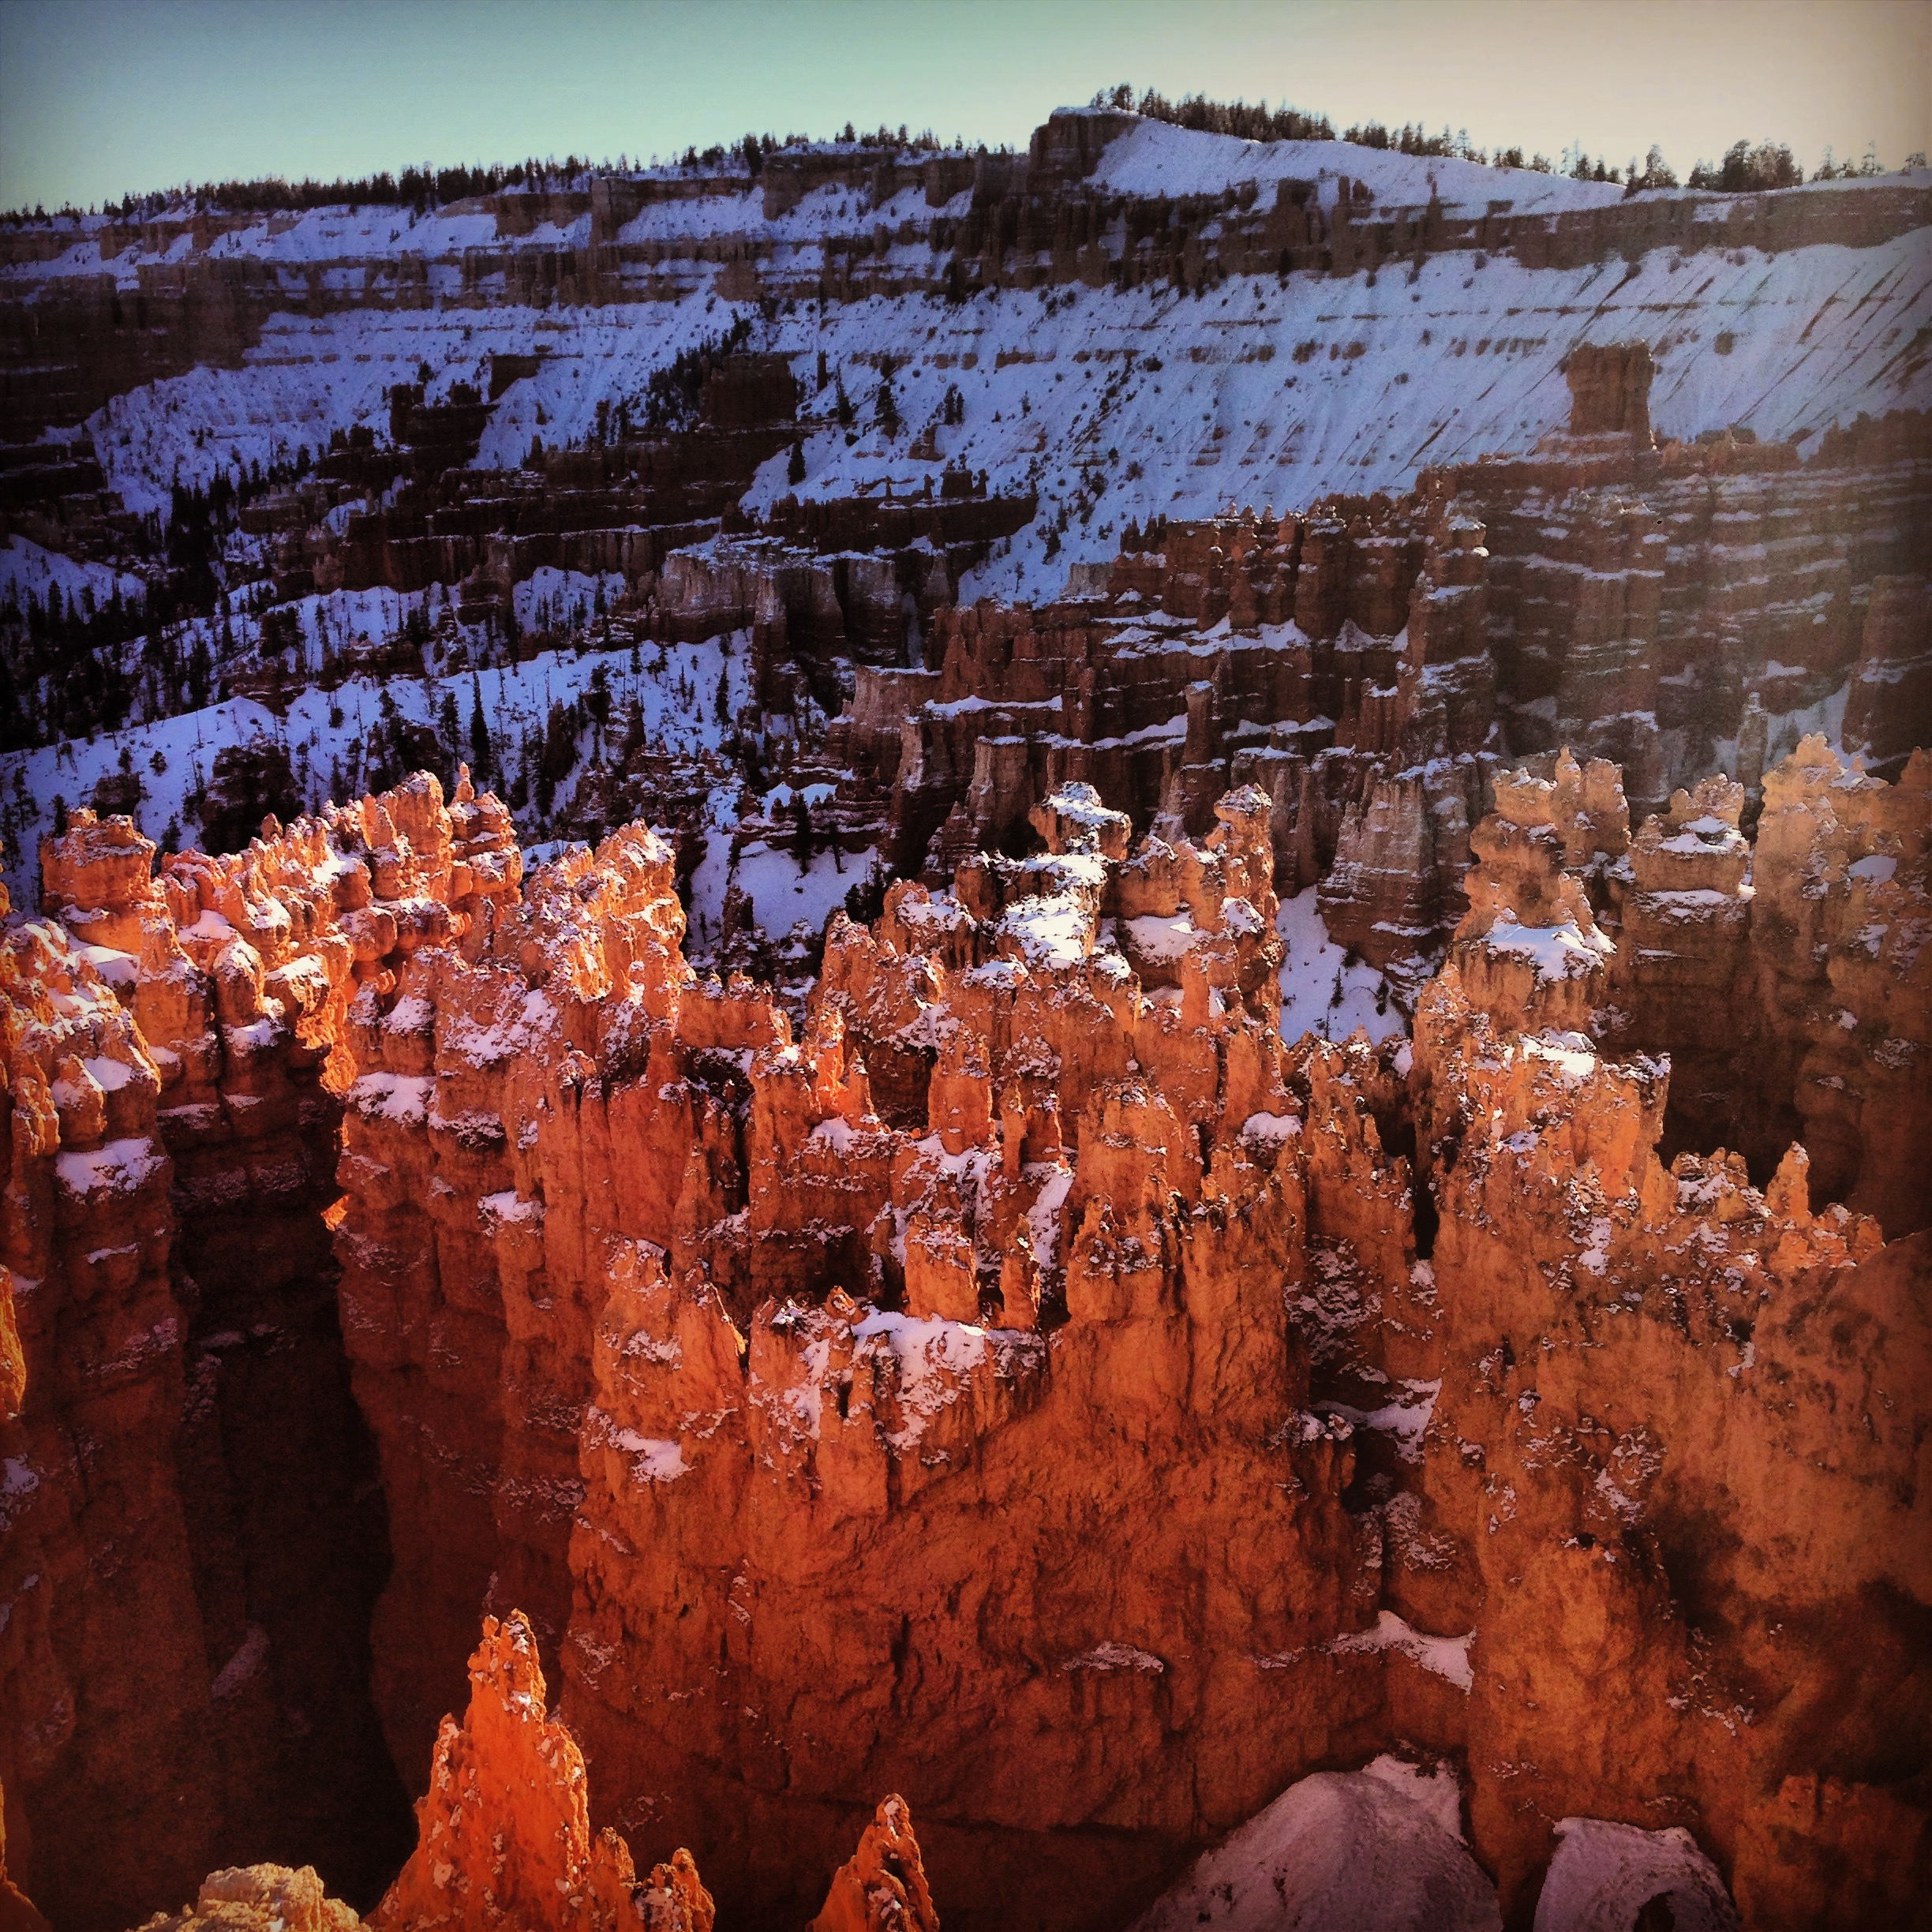 The magic and majesty of the mountains and hoo doo's in Bryce Canyon in Utah